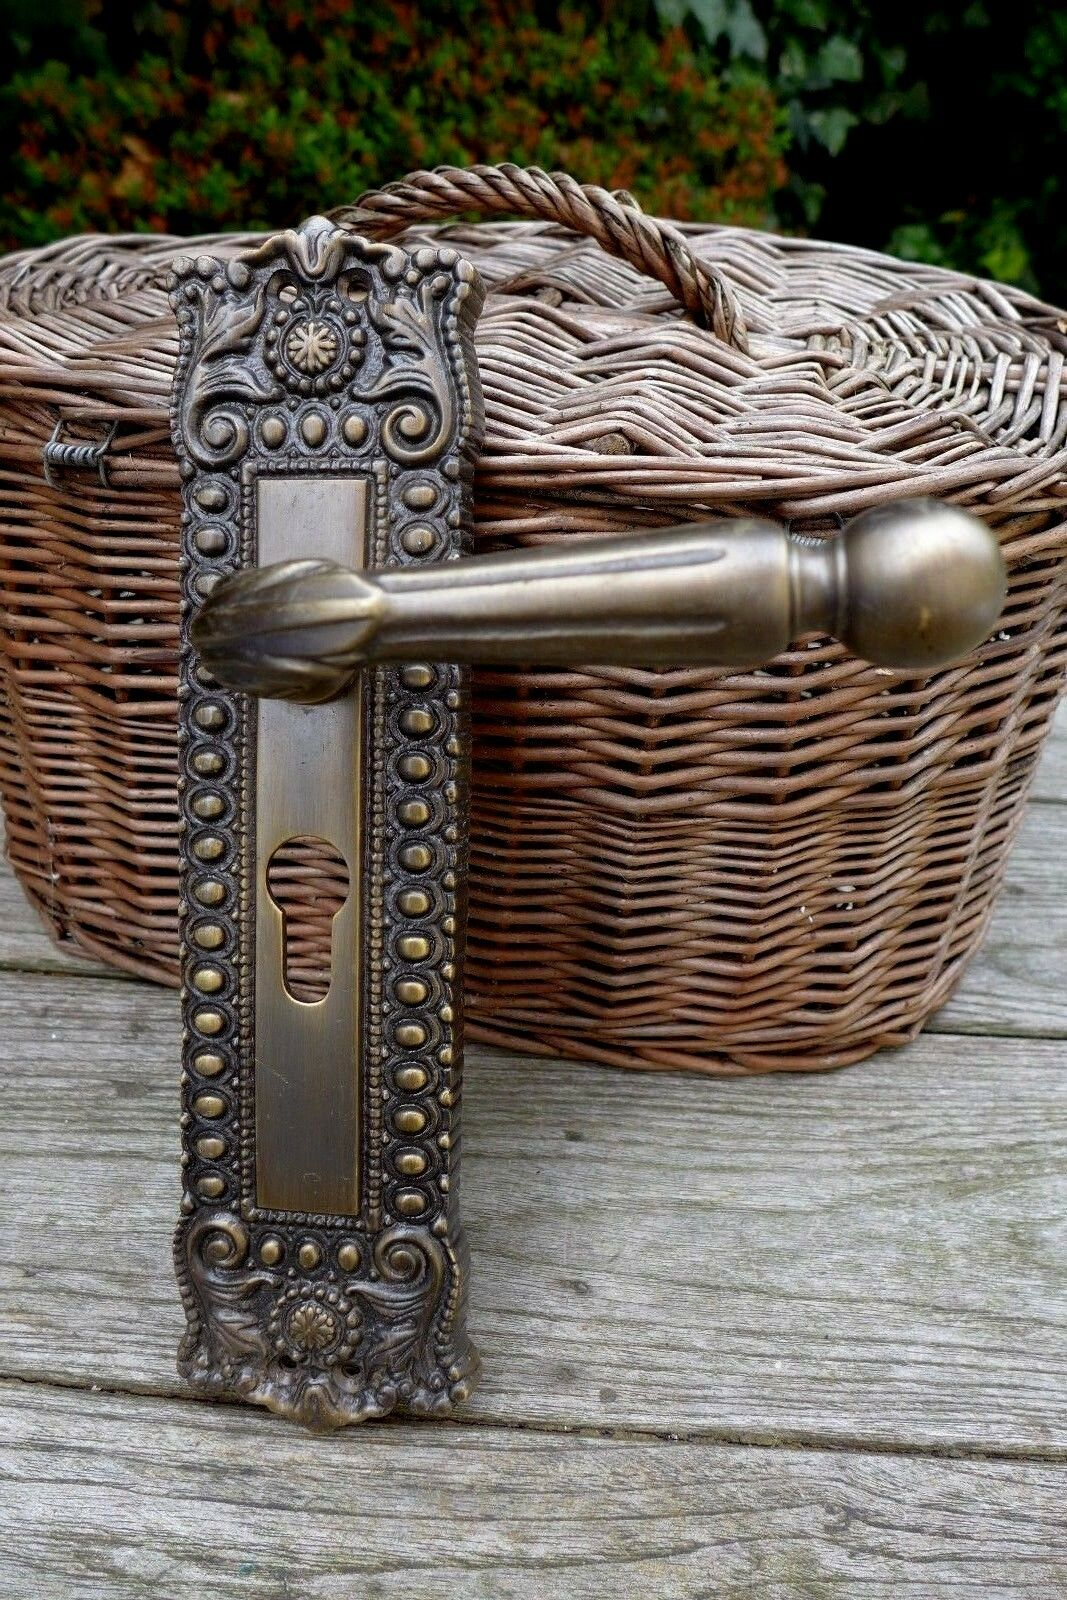 Solid Brass Decorative Large Door Handle with Decorative Cover Project 27-03